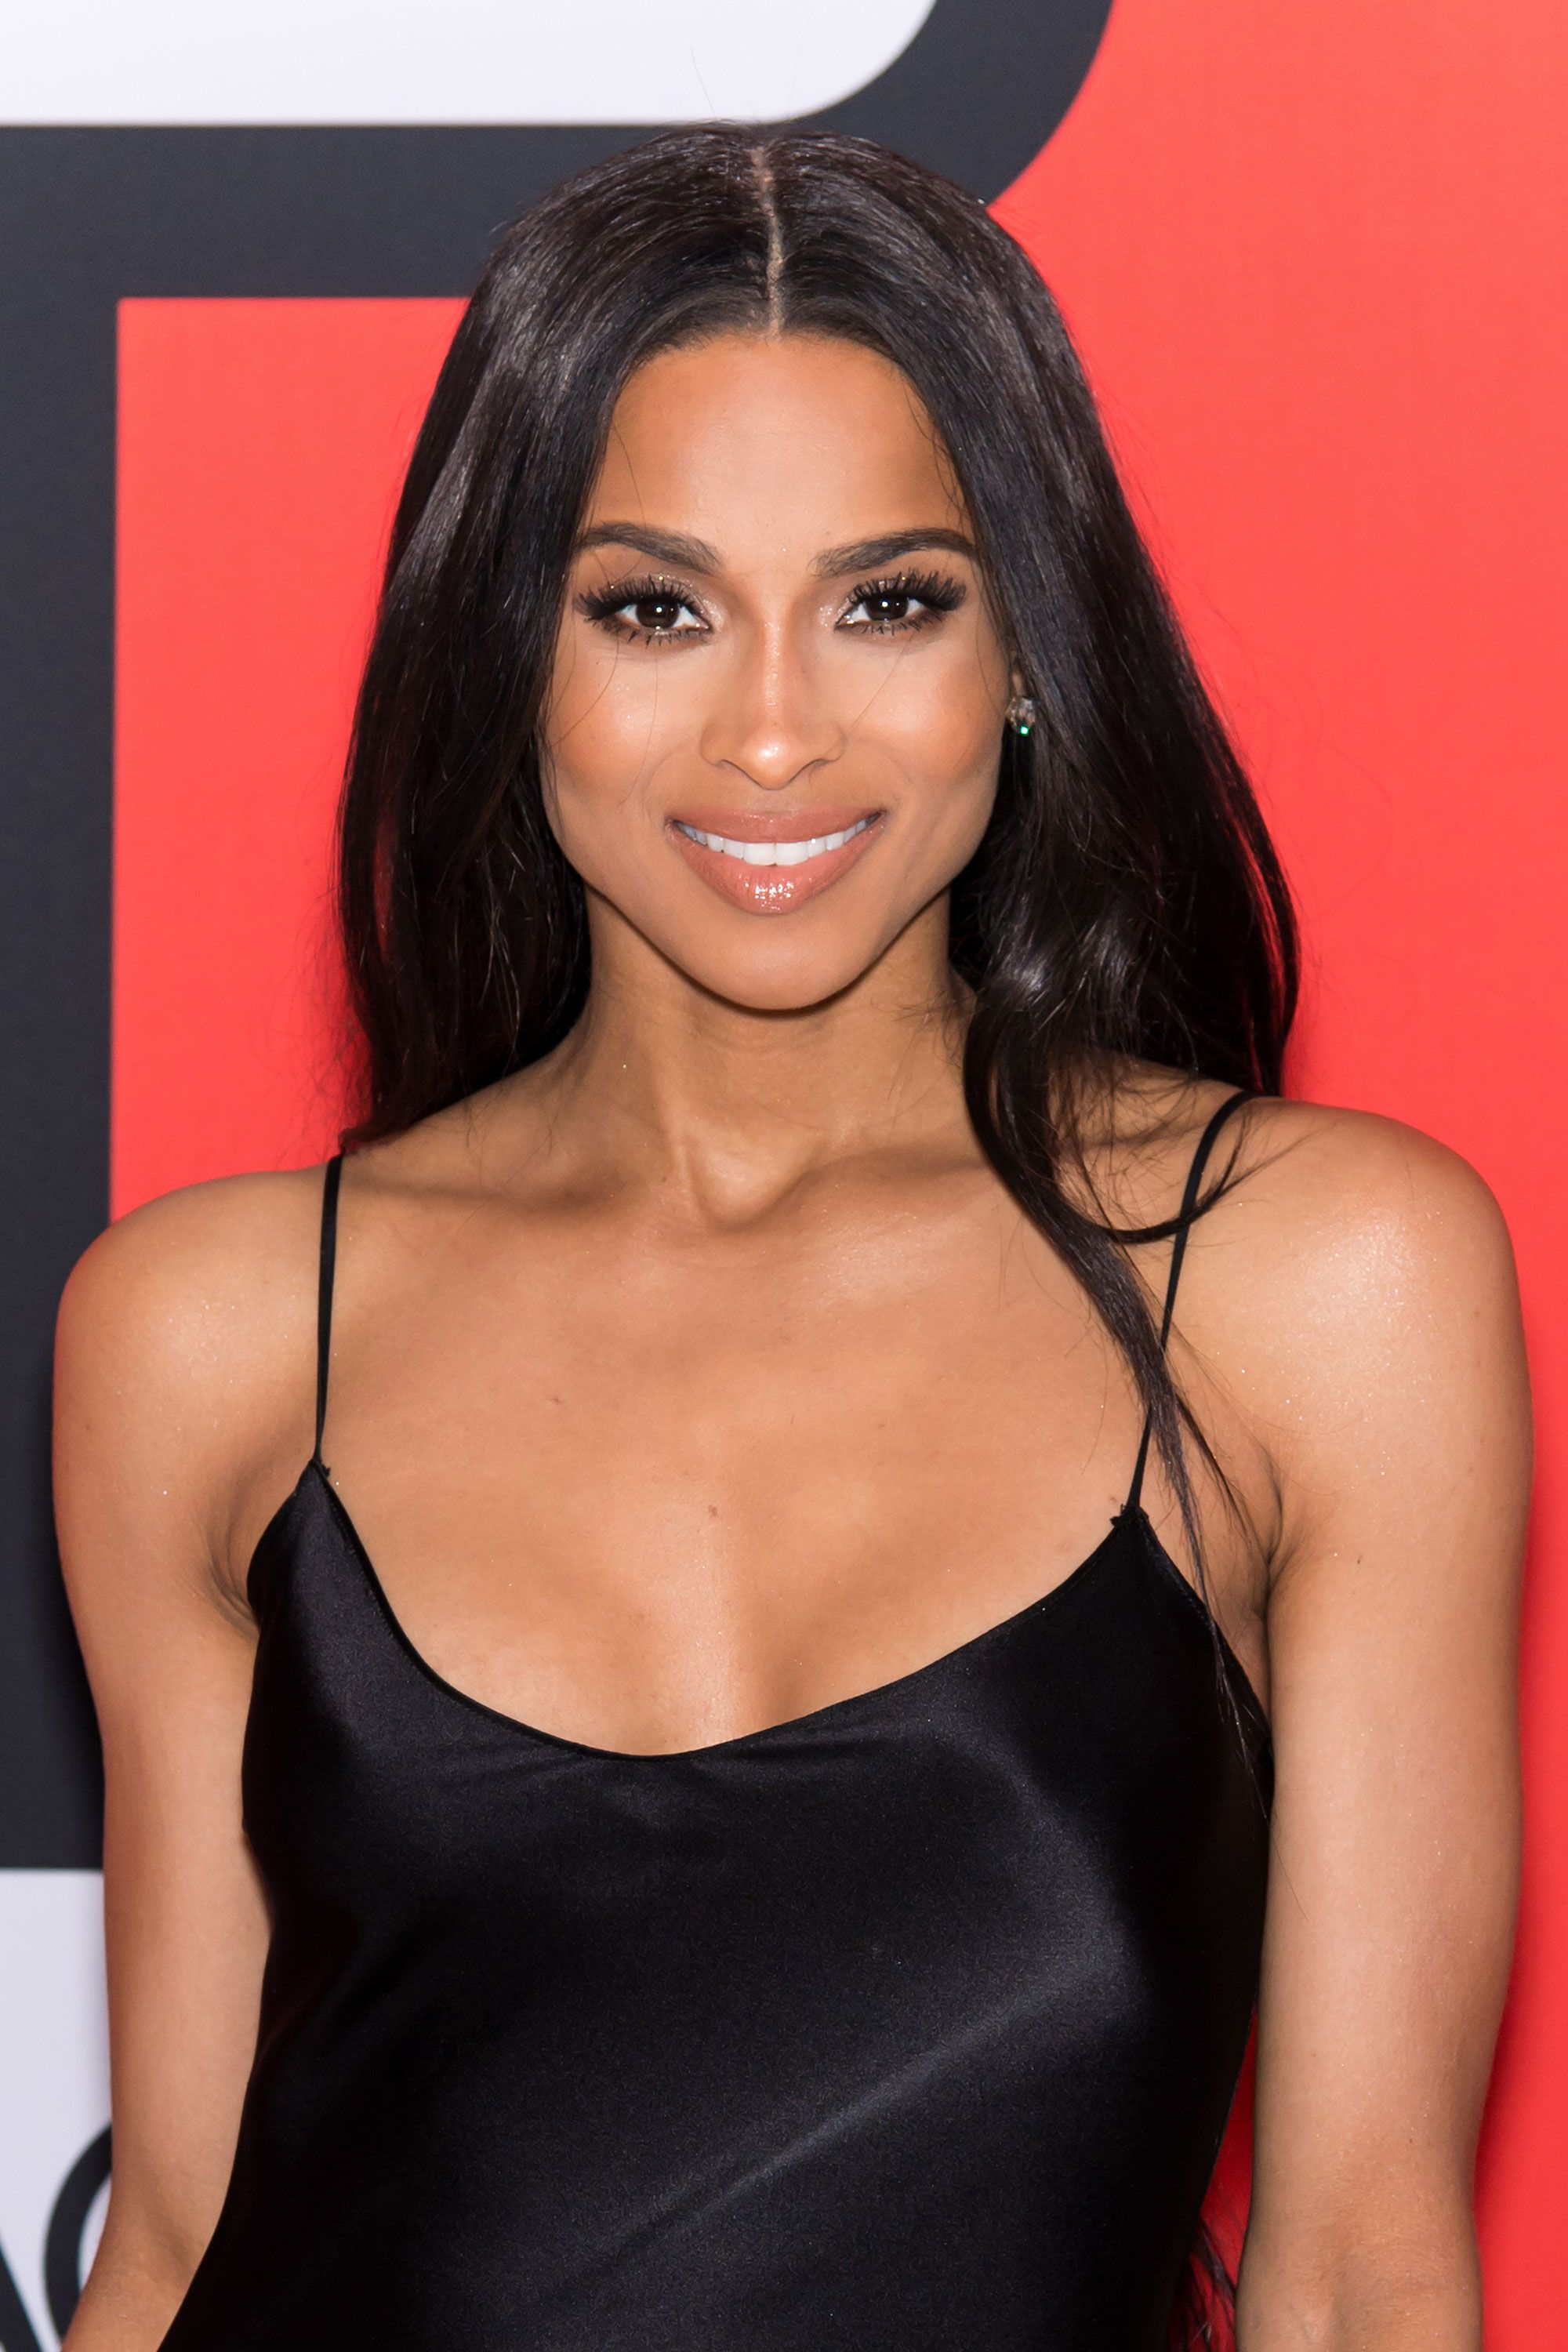 Ciara matches her simple black slip with a sleek middle-parted 'do, nude lips, and perfectly arched brows.